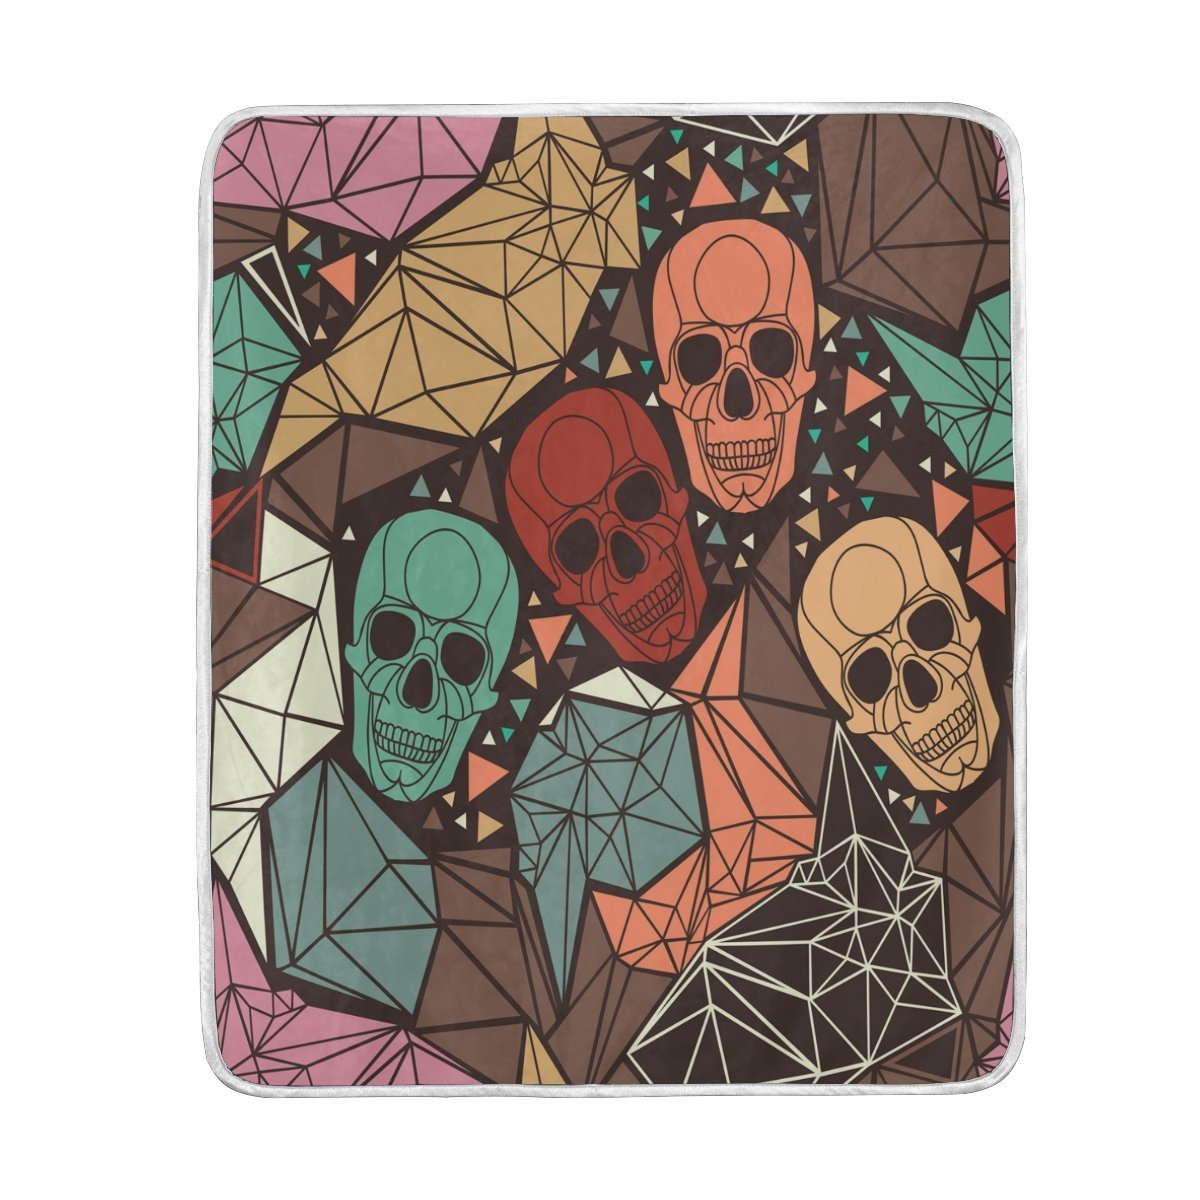 Halloween Colorful Sugar Skull Blanket Soft Warm Cozy Bed